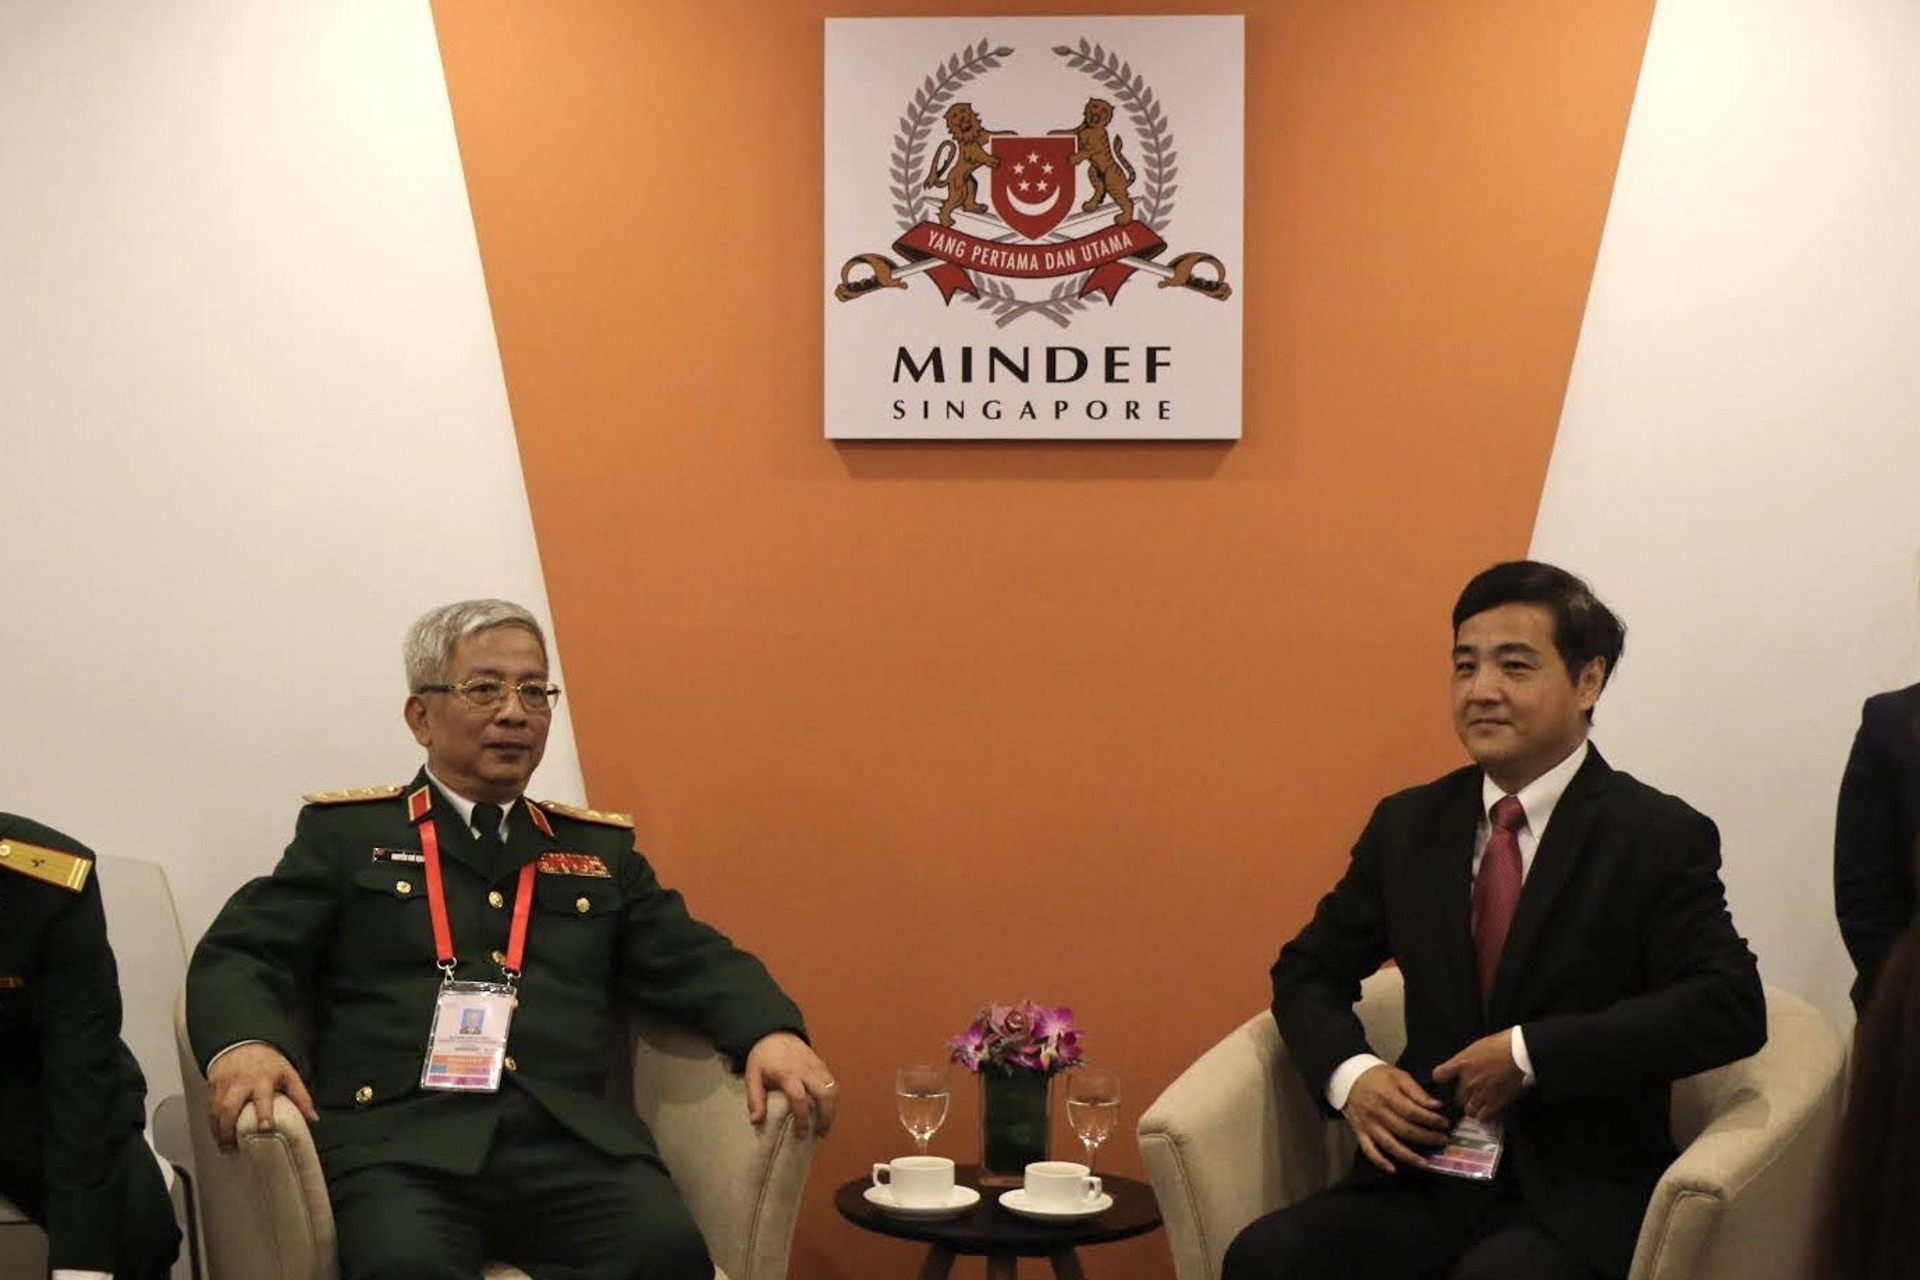 Vietnam Deputy Minister of National Defence Senior Lieutenant General Nguyen Chi Vinh (left) calling on Senior Minister of State for Defence Heng Chee How (right) earlier today.